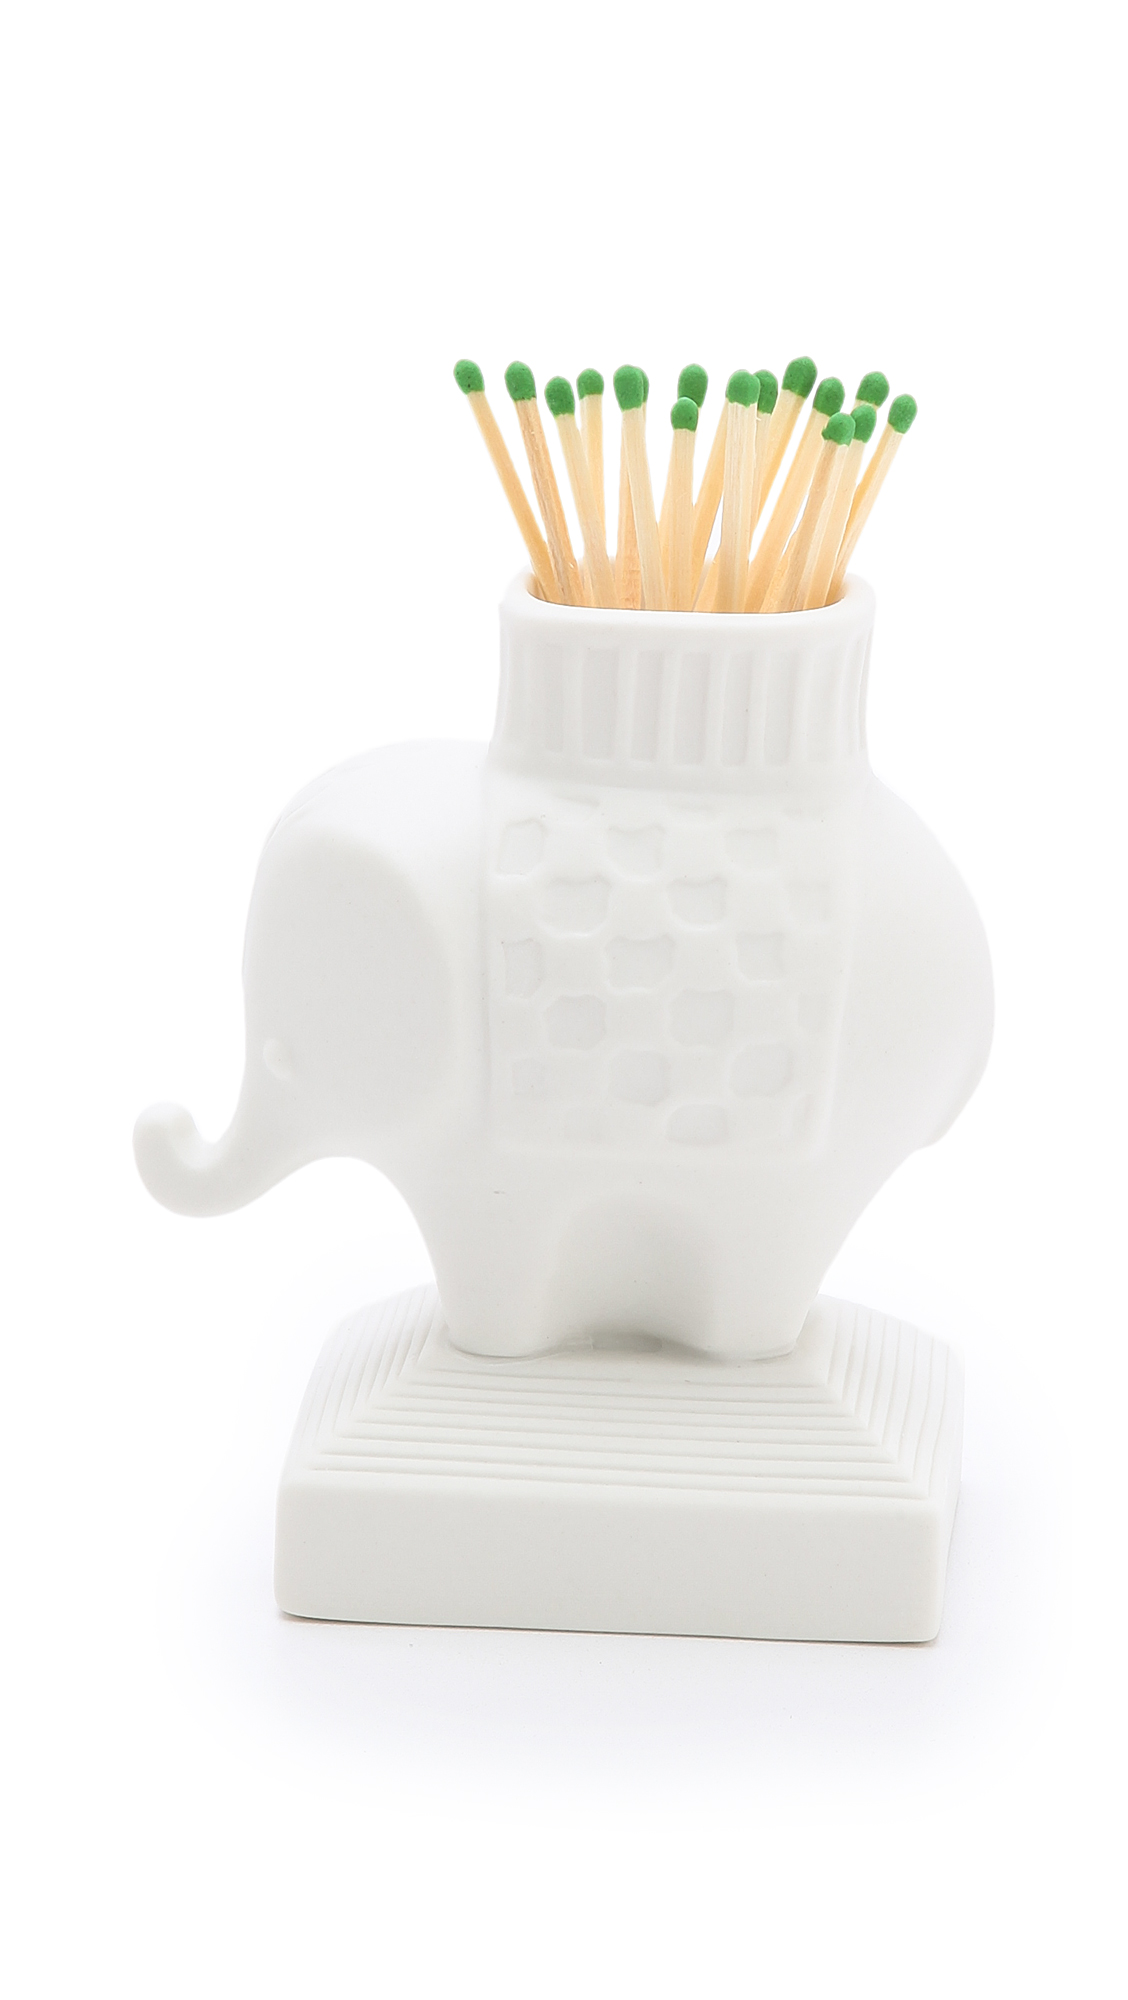 Jonathan Adler Elephant Match Strike - White